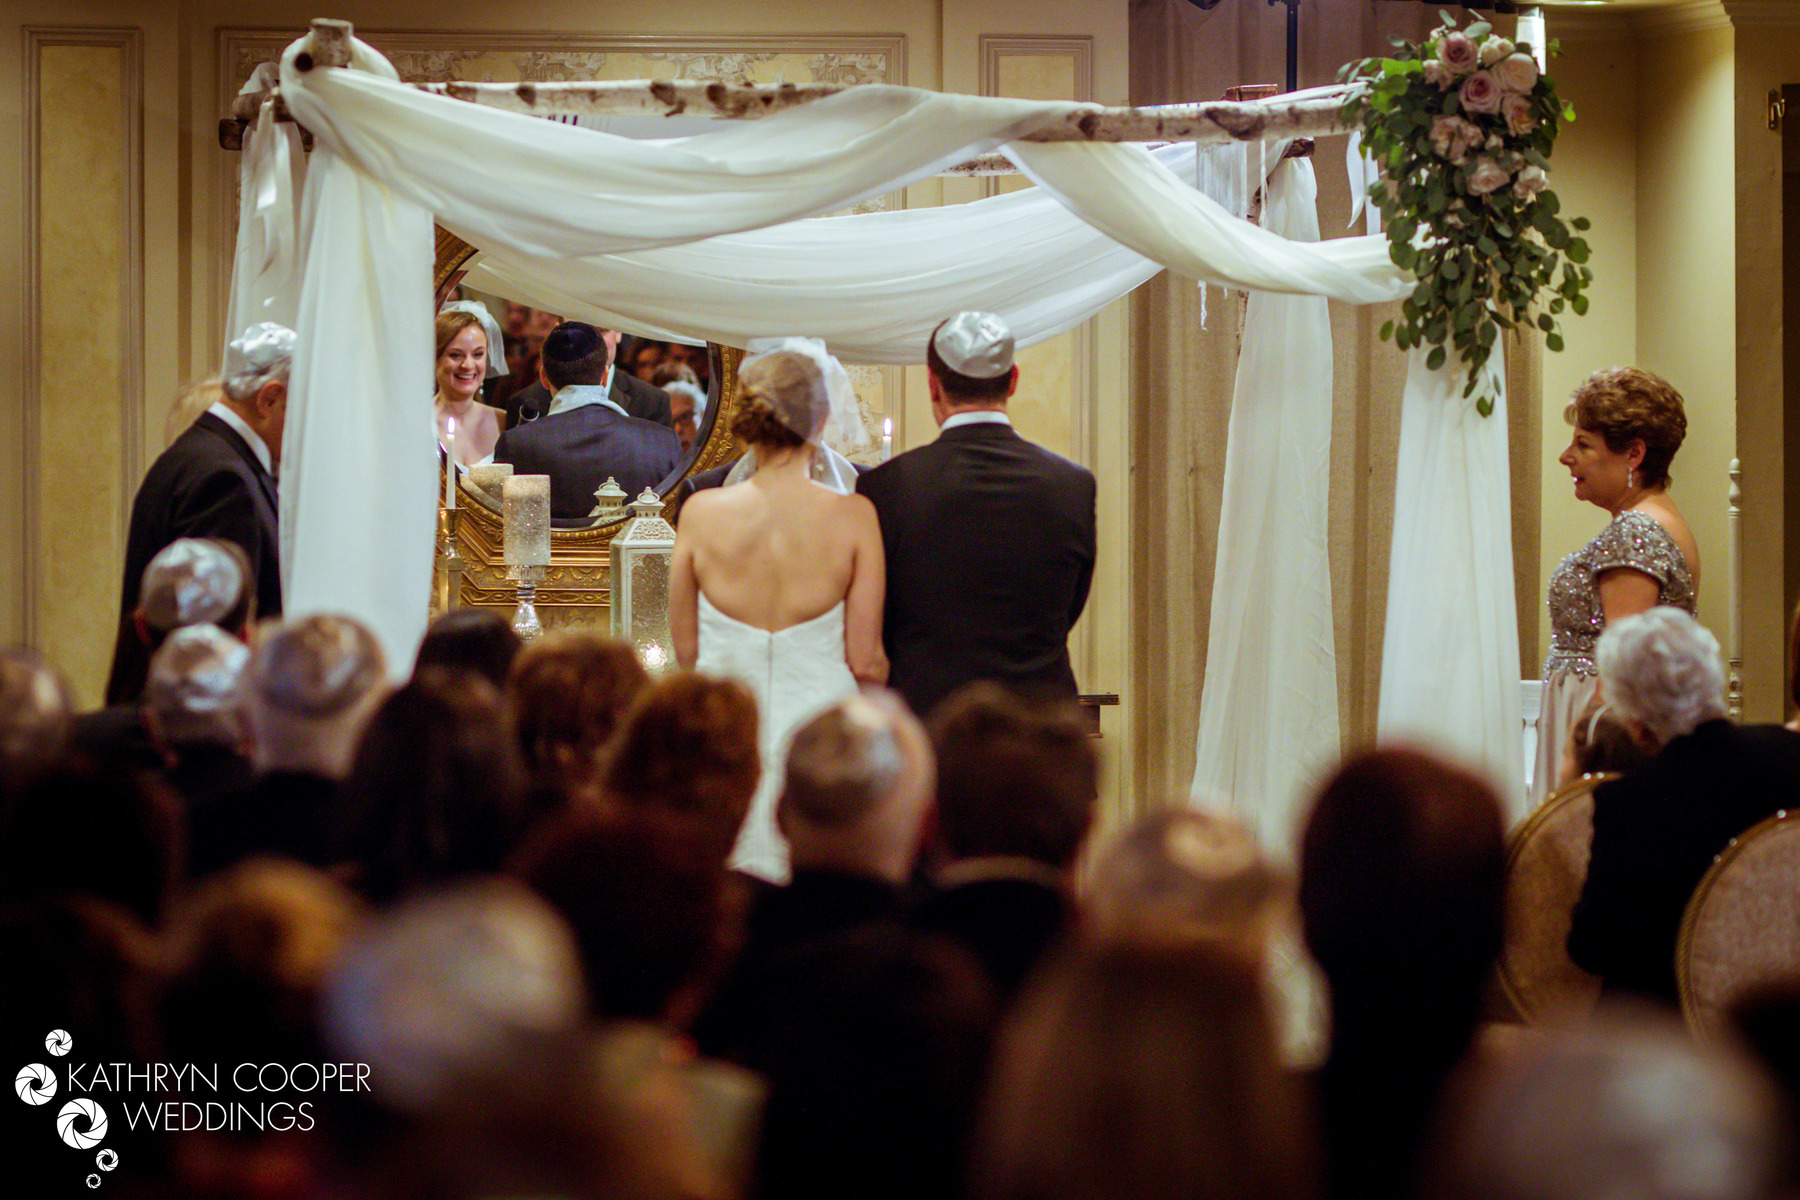 Chuppah New Jersey for Dana and Jared's wedding ceremony in morris plains New Jersey